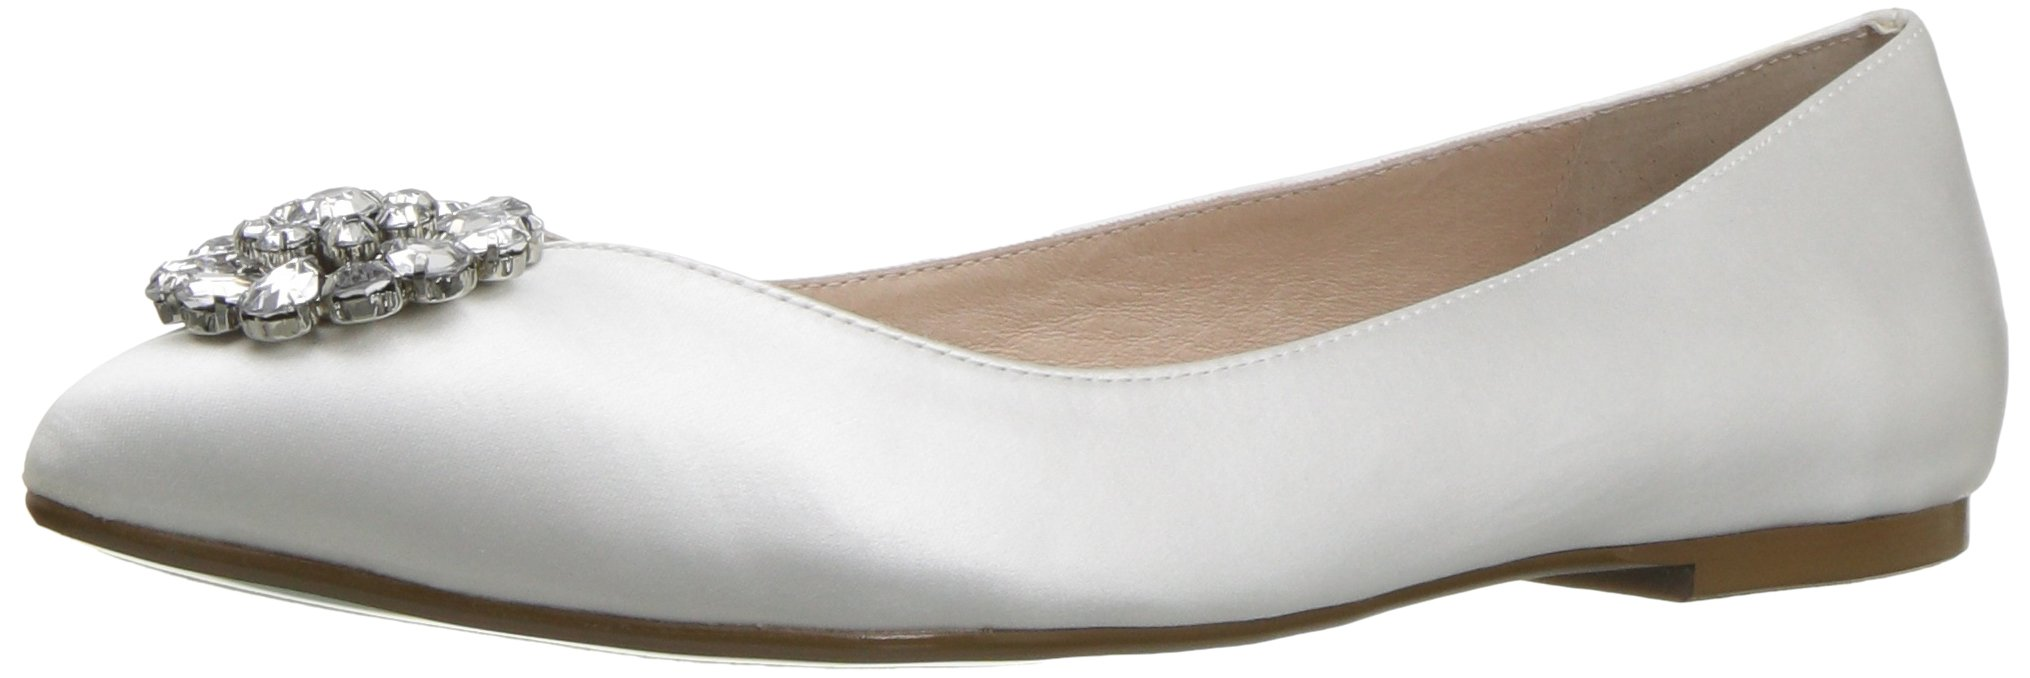 Blue by Betsey Johnson Women's Sb-Ava Pointed Toe Flat, Ivory Satin, 8.5 M US